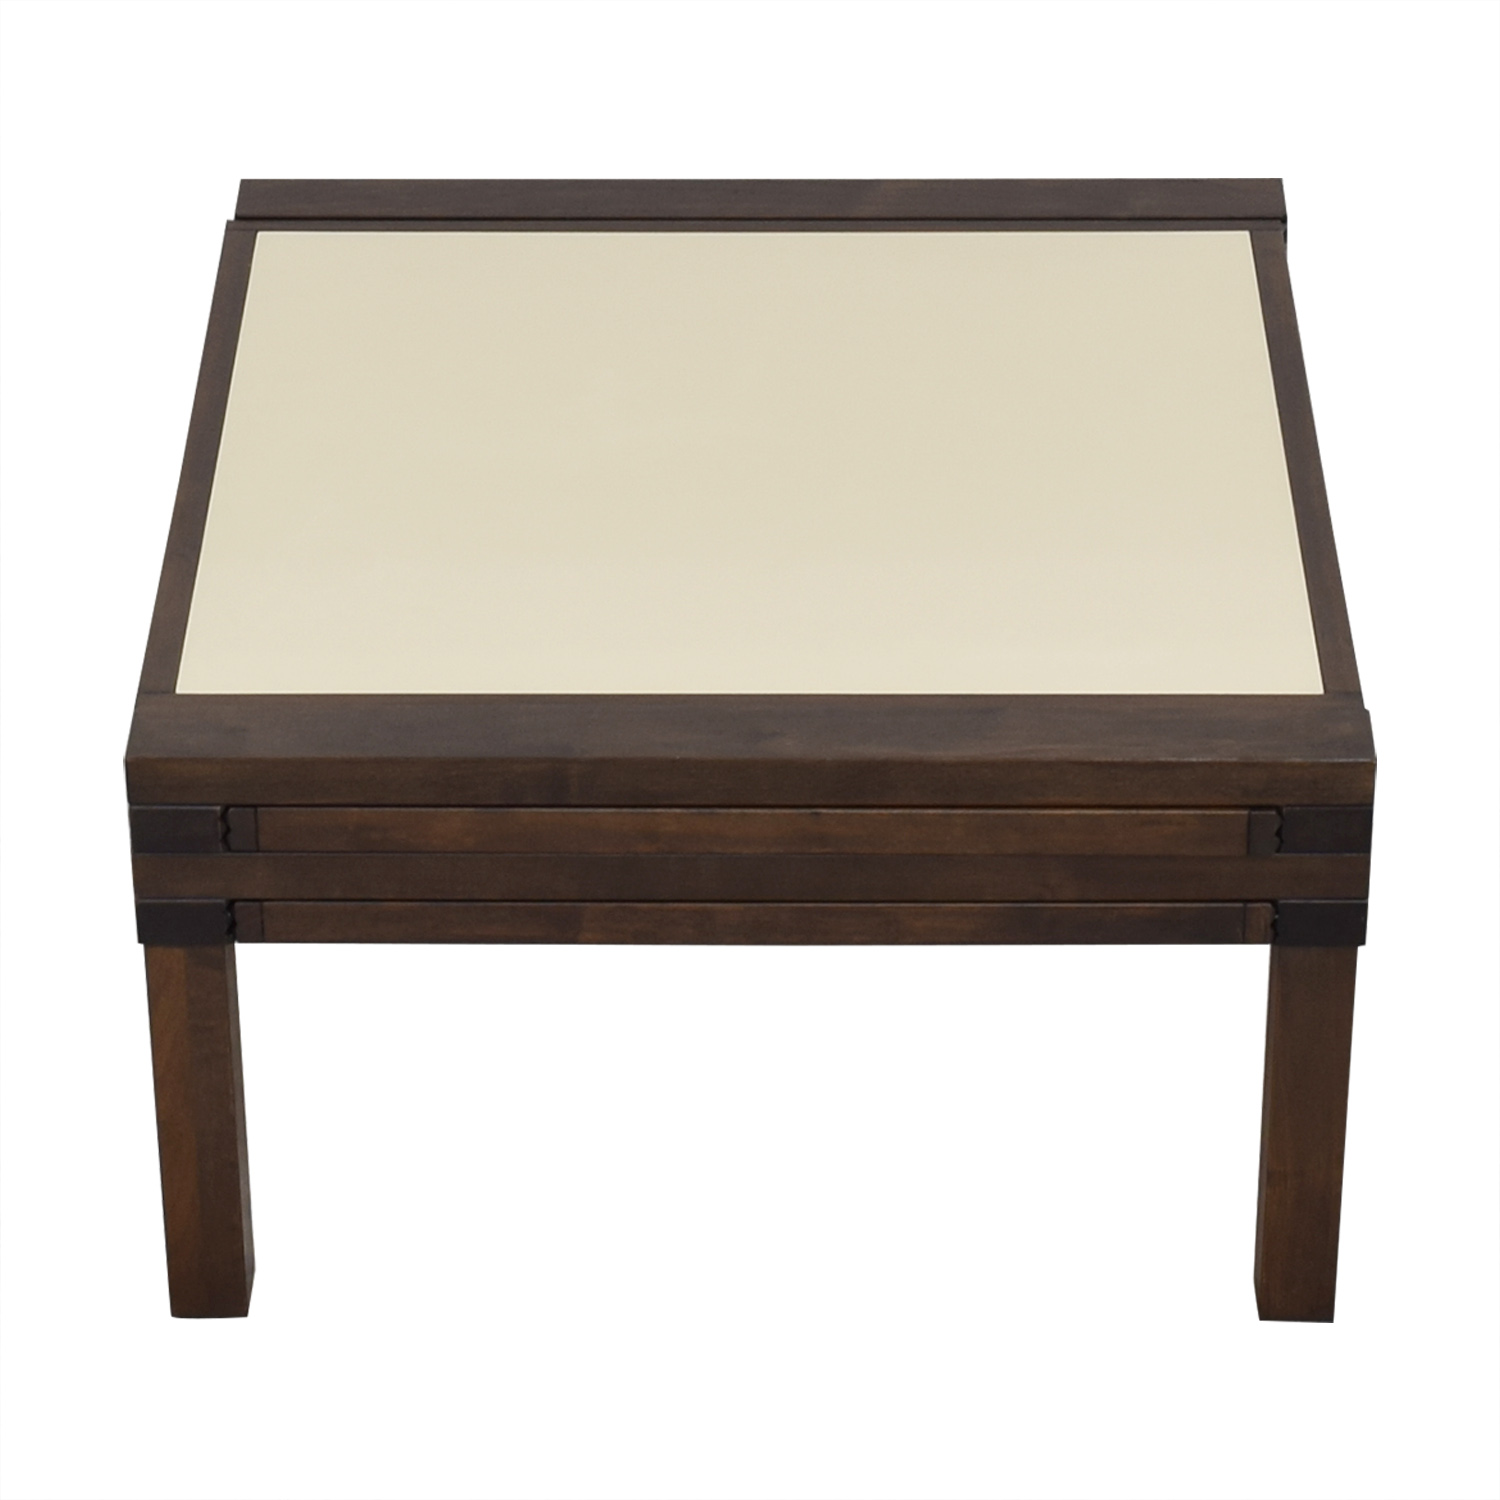 buy Design Within Reach Design Within Reach Extendable Coffee Table online